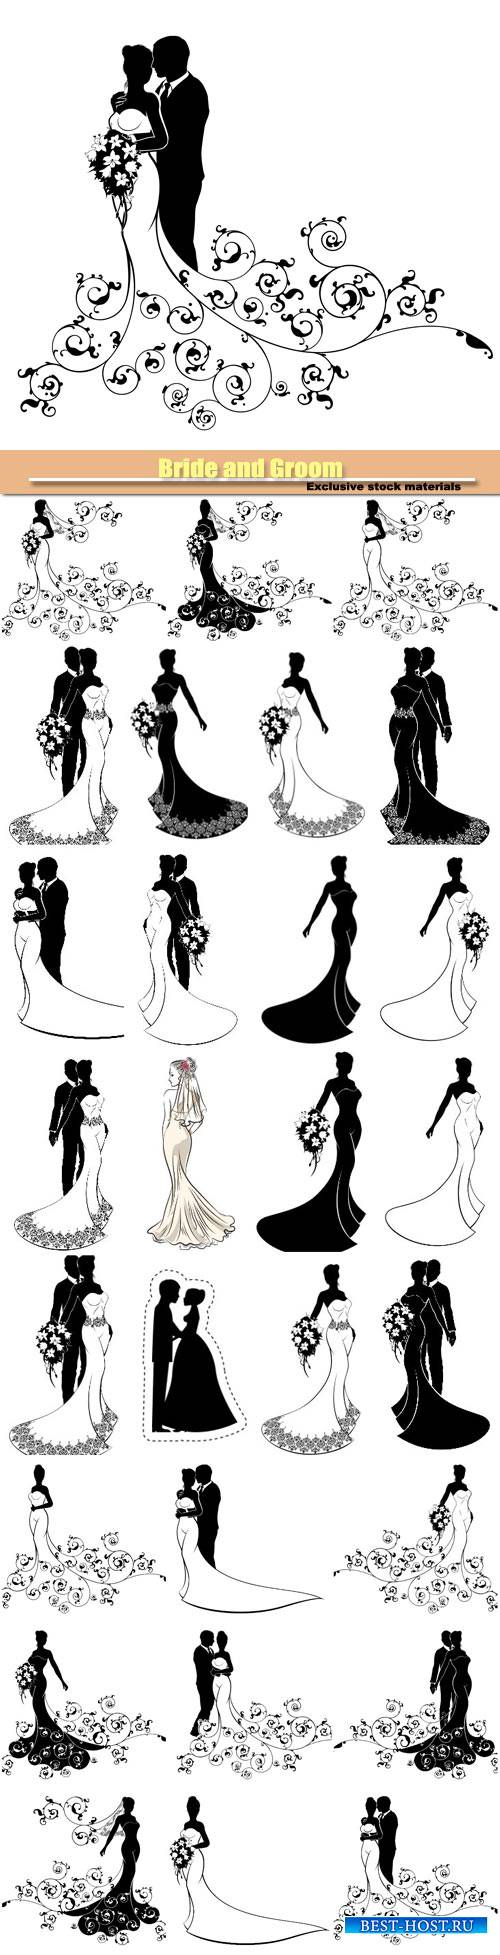 Bride and Groom, wedding silhouette vector set